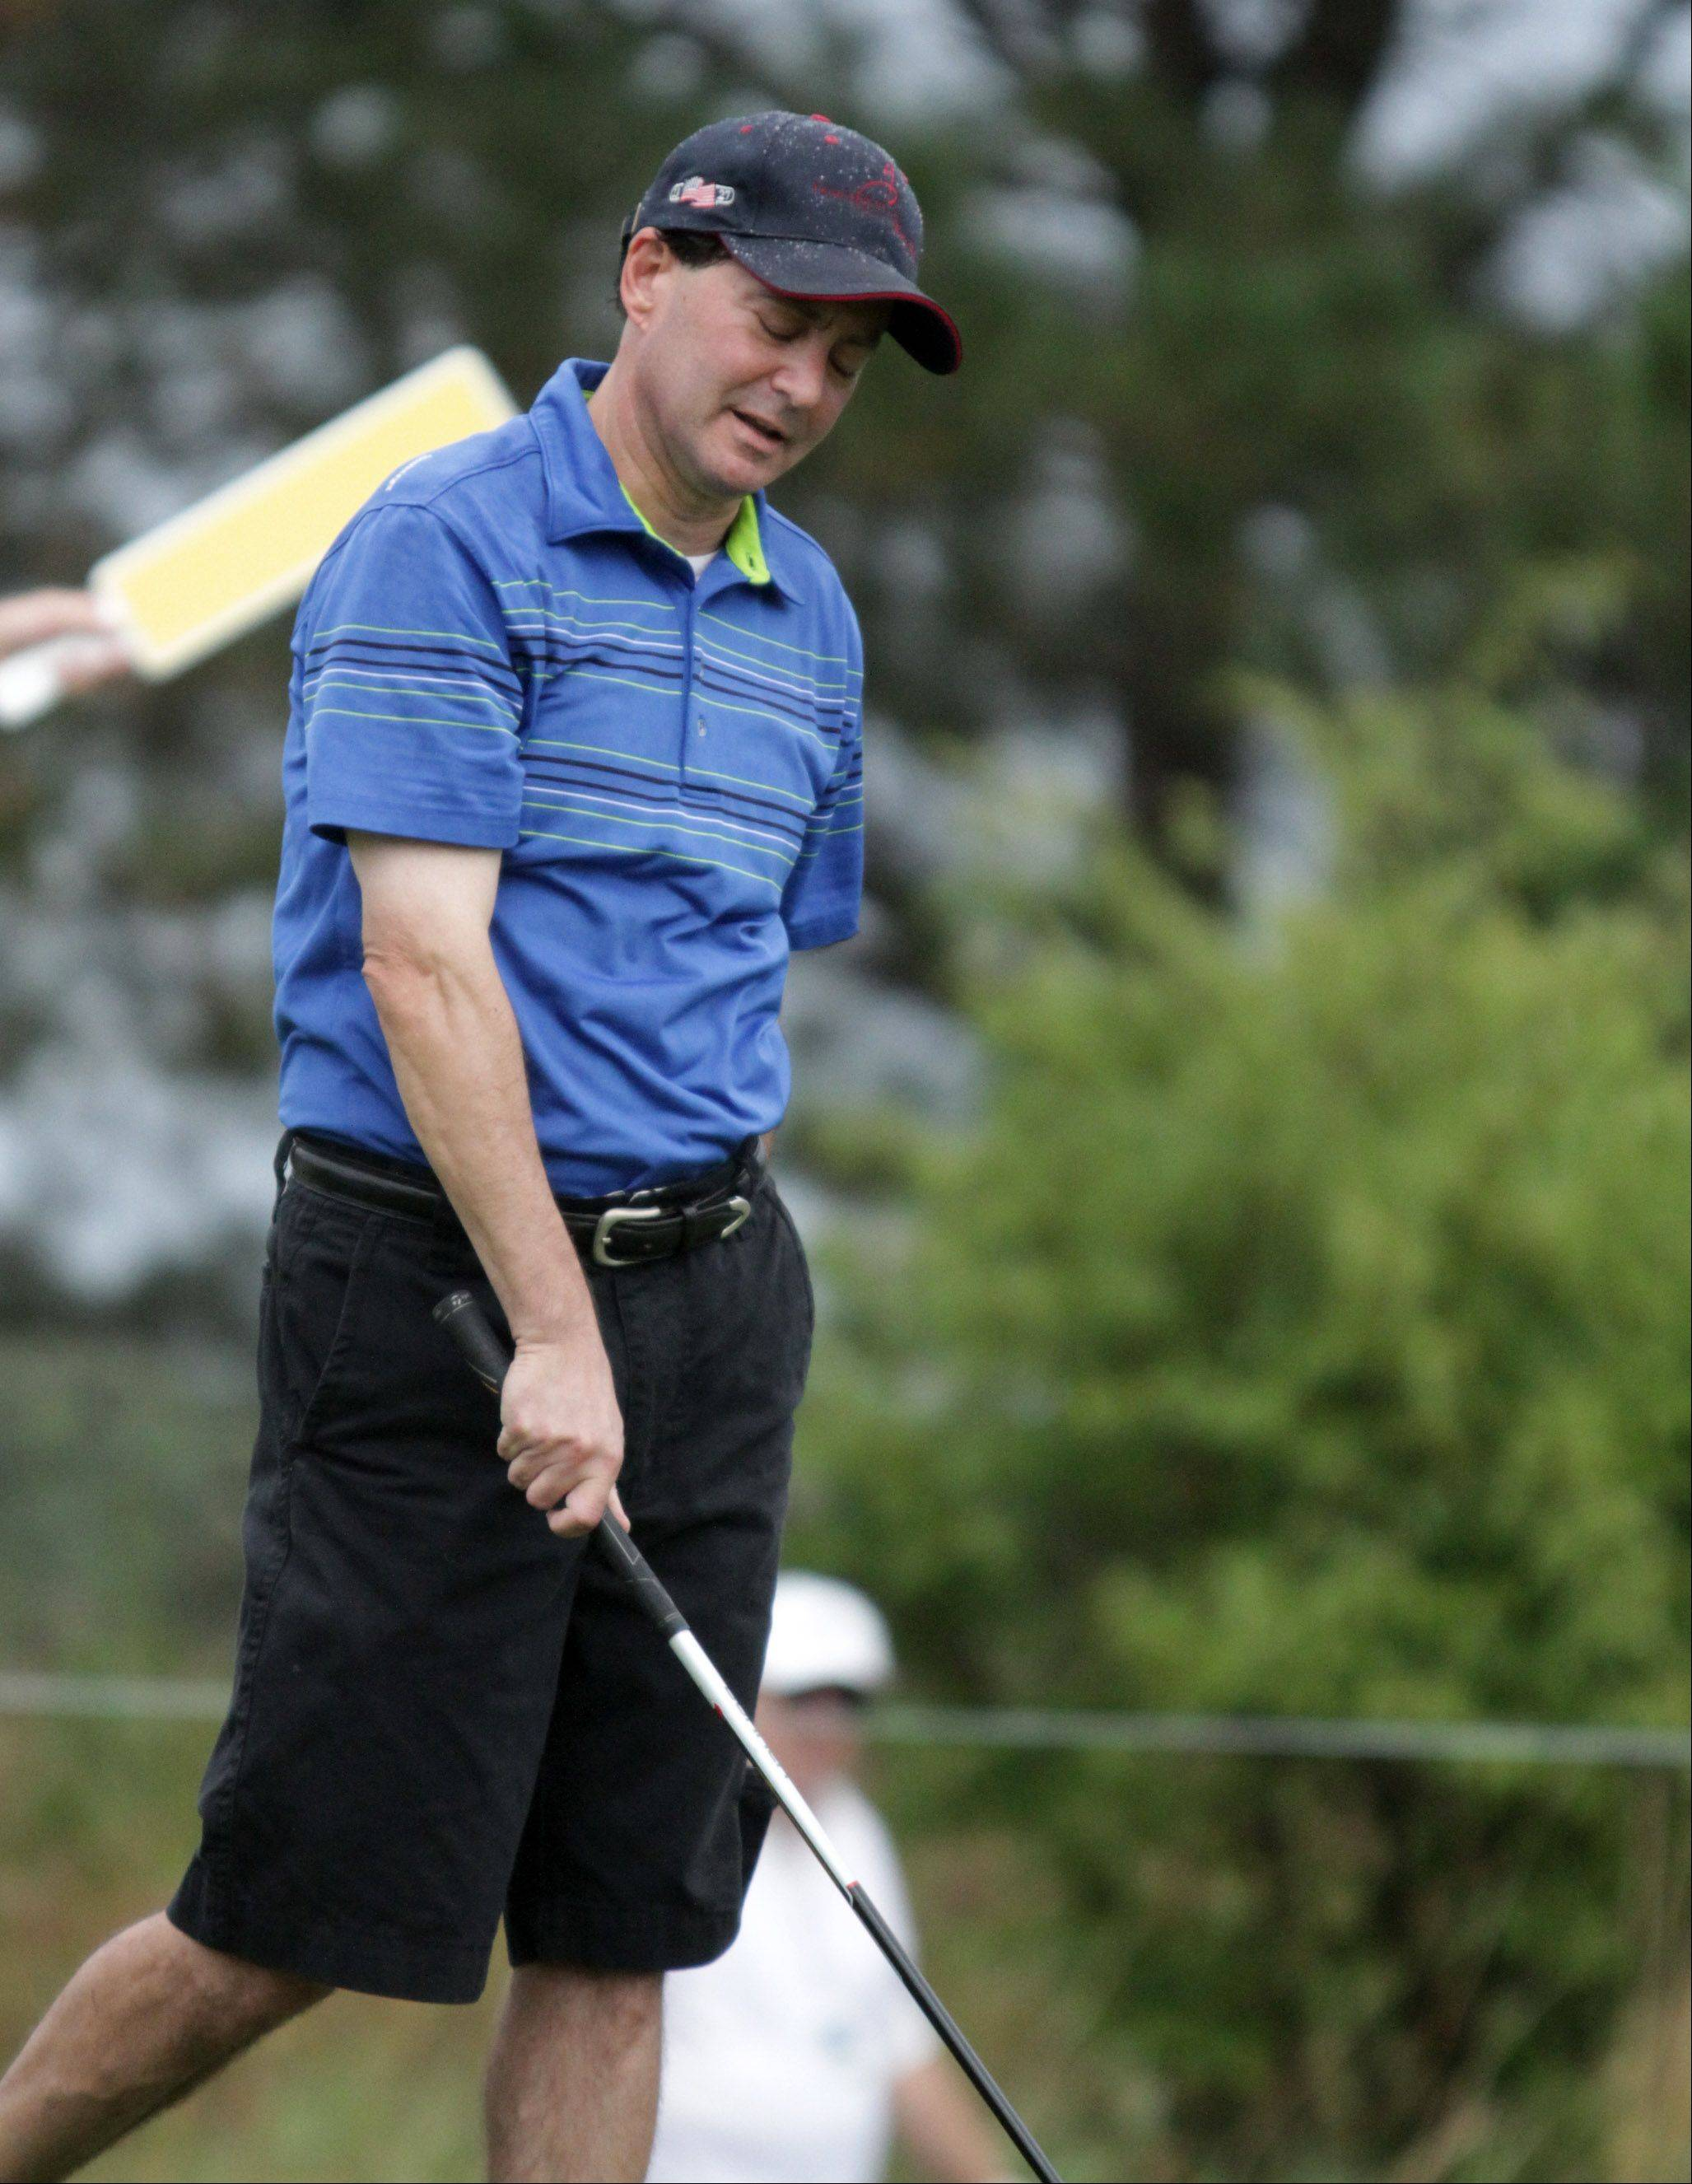 Daily Herald sports columnist Barry Rozner reacts to his tee swing on the tenth hole.